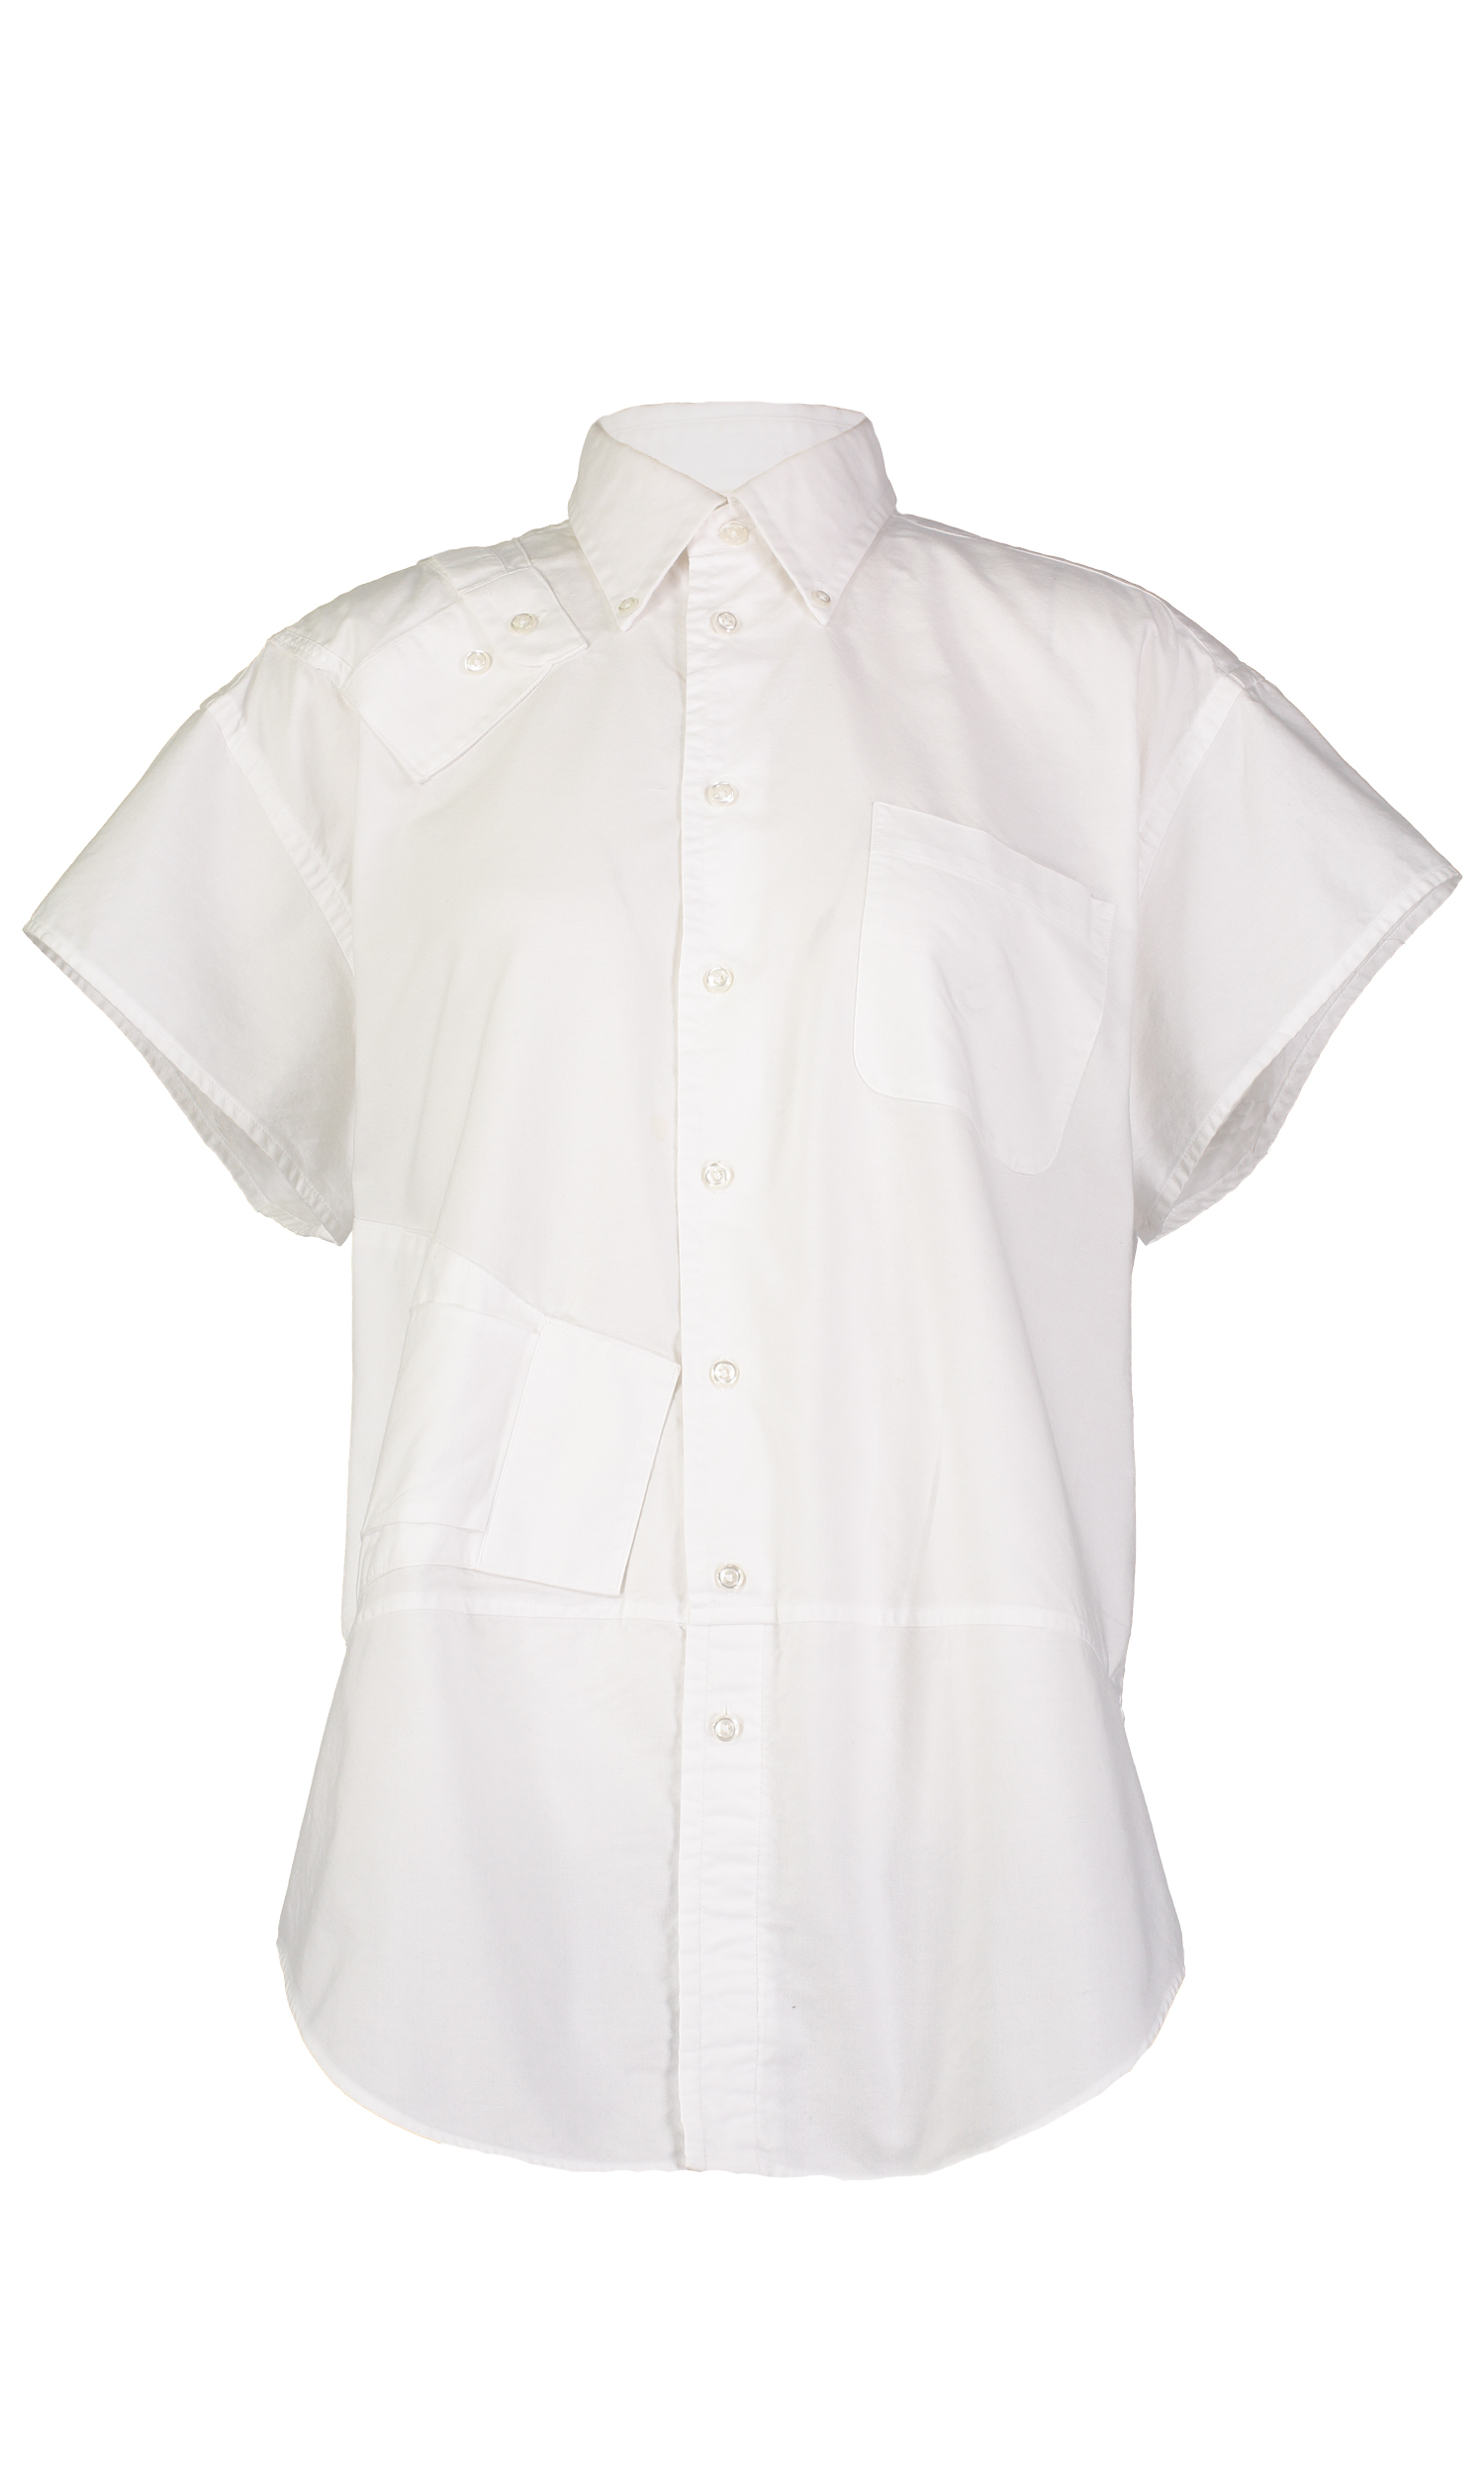 """The Sam Shirt - Length - 32"""" for all sizesBust - [S = 46""""] [M = 50""""] [L = 54""""]Waist - [S = 44-48""""] [M = 49-52""""] [L = 53-56""""] *due to the upcycled and oversized nature of this garment the waist size may vary slightly."""